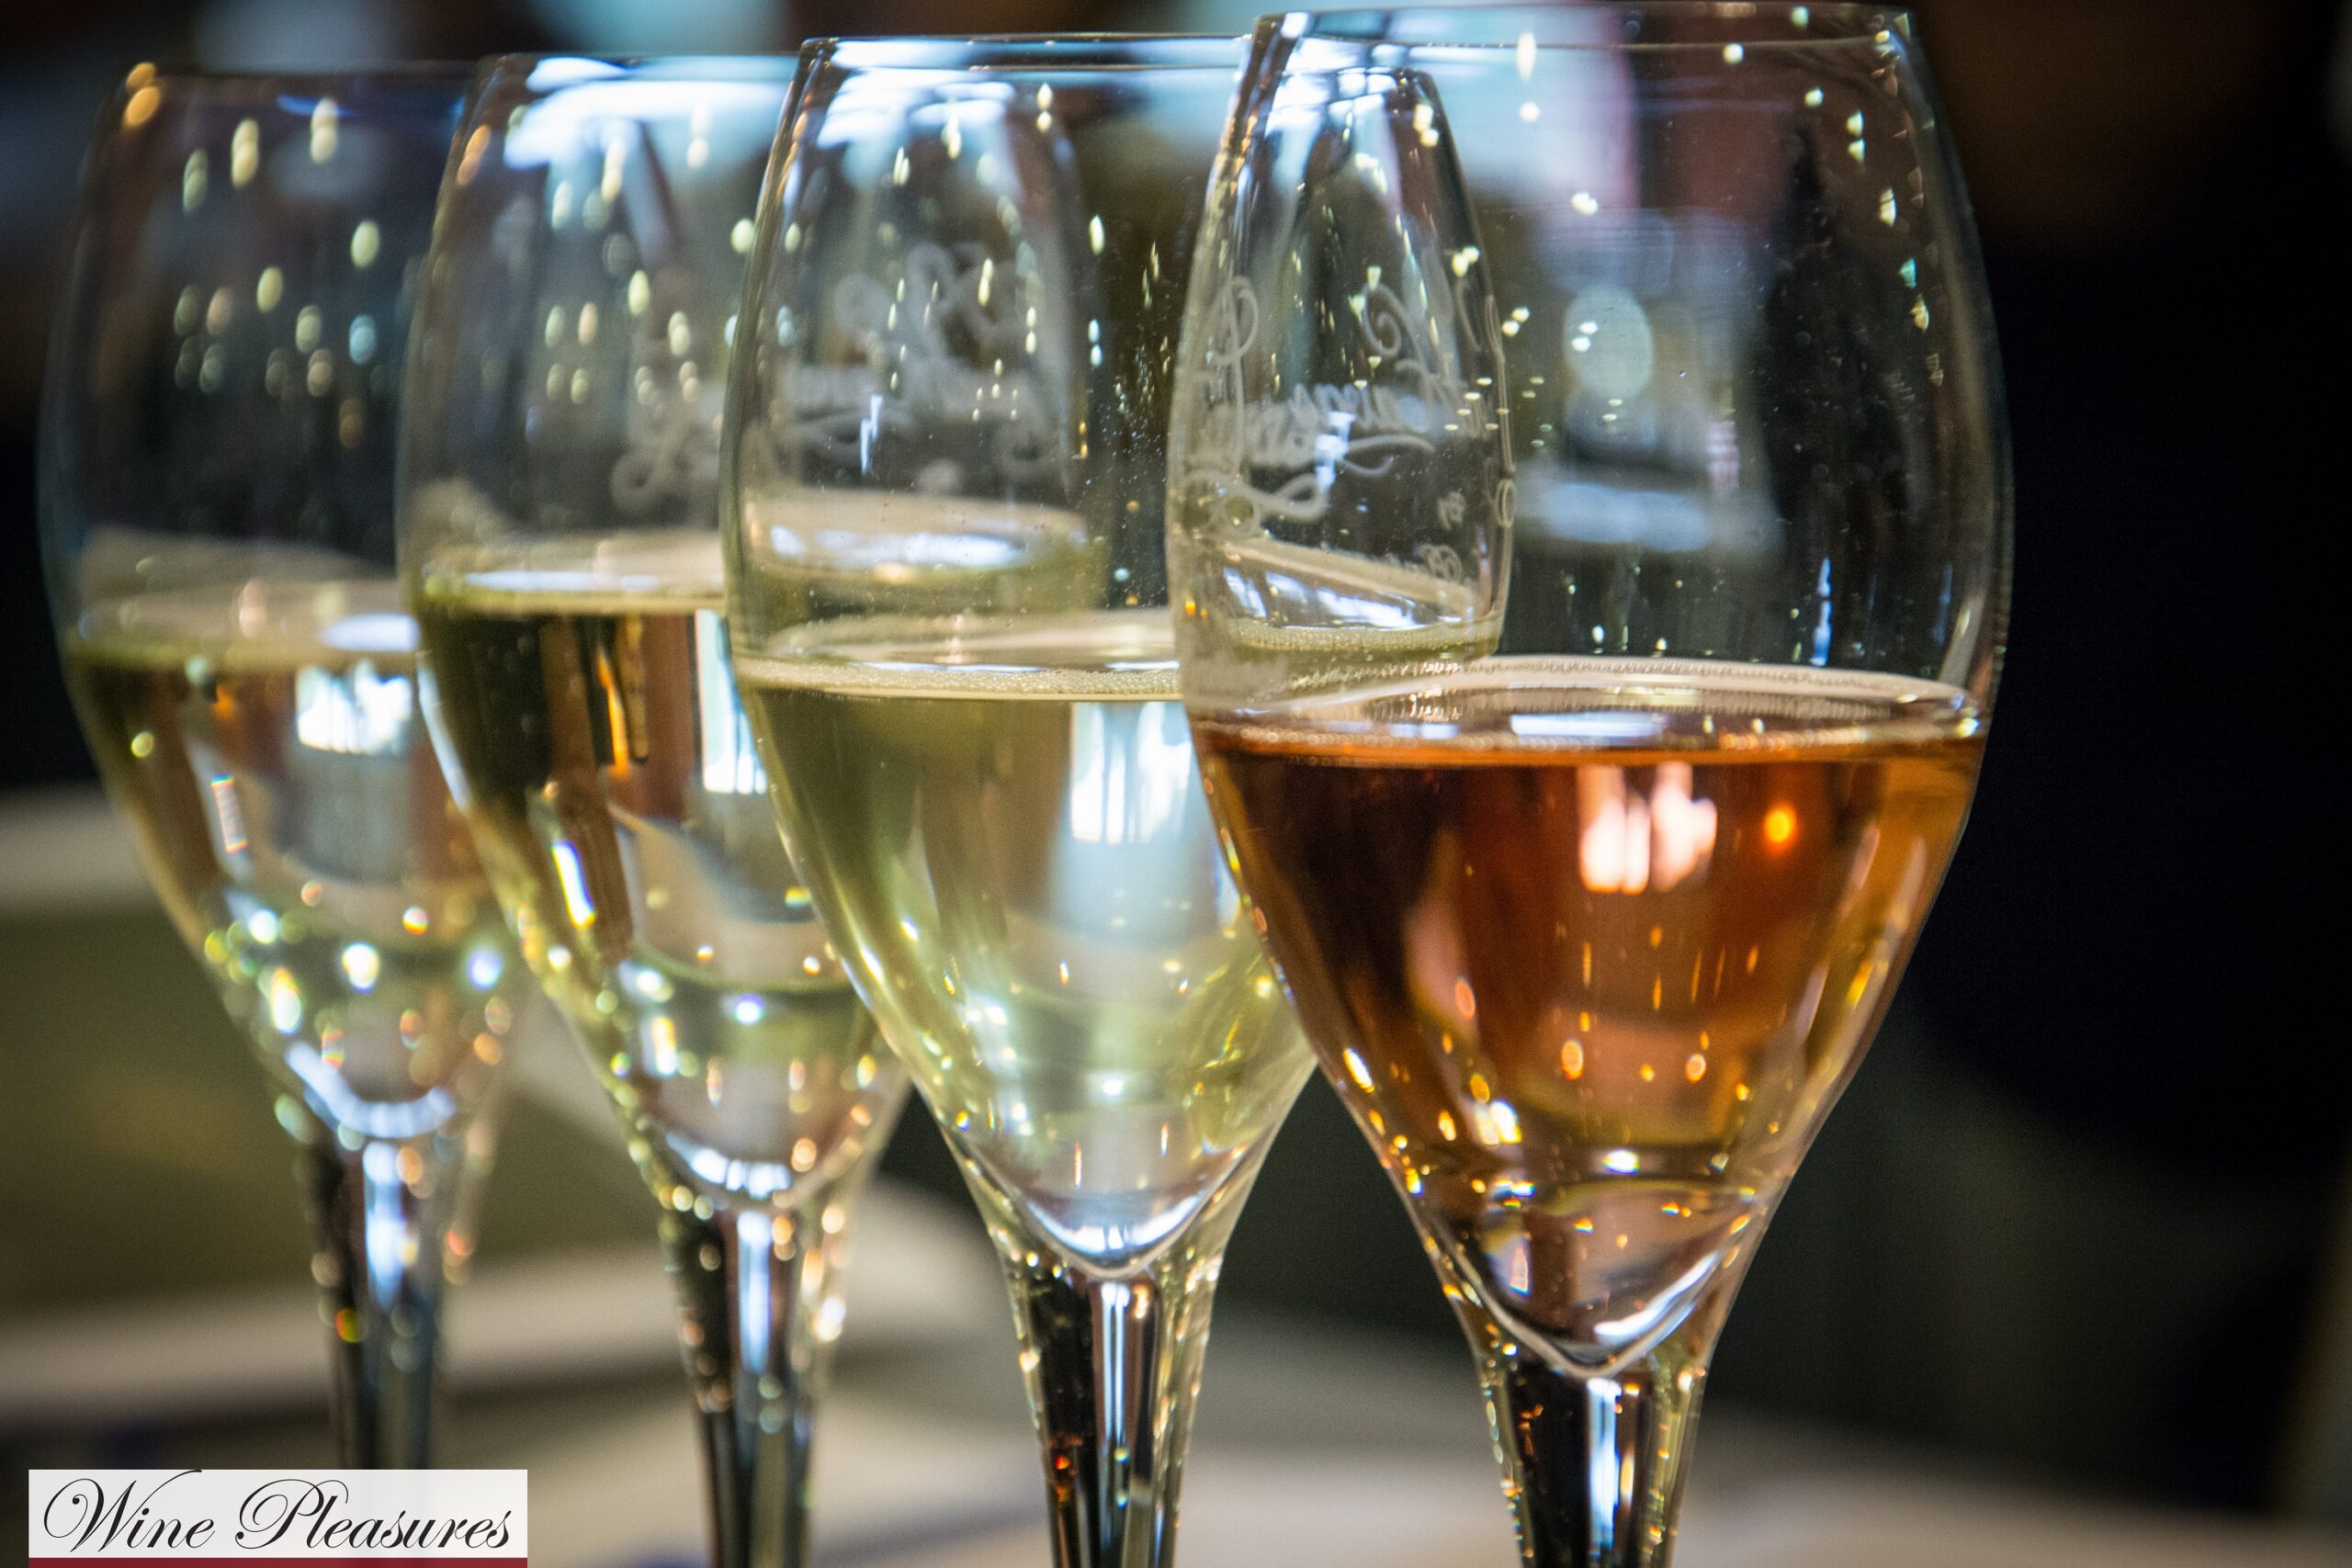 Wine Pleasures To Show Award Winning Sparkling Wines in London